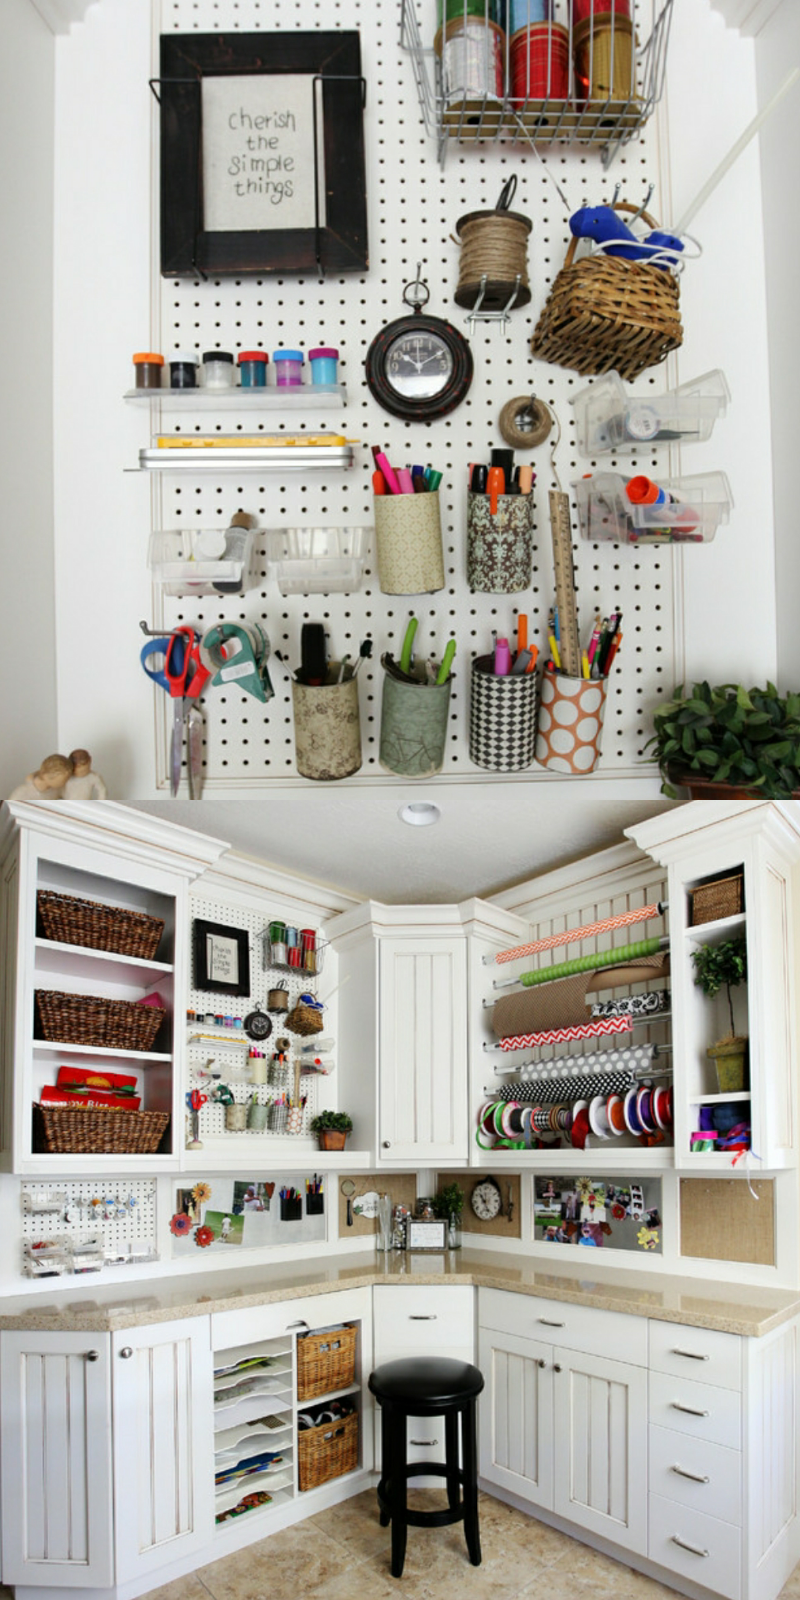 delightful craft room ideas small storage and diy craft on diy home decor on a budget apartment ideas id=69641